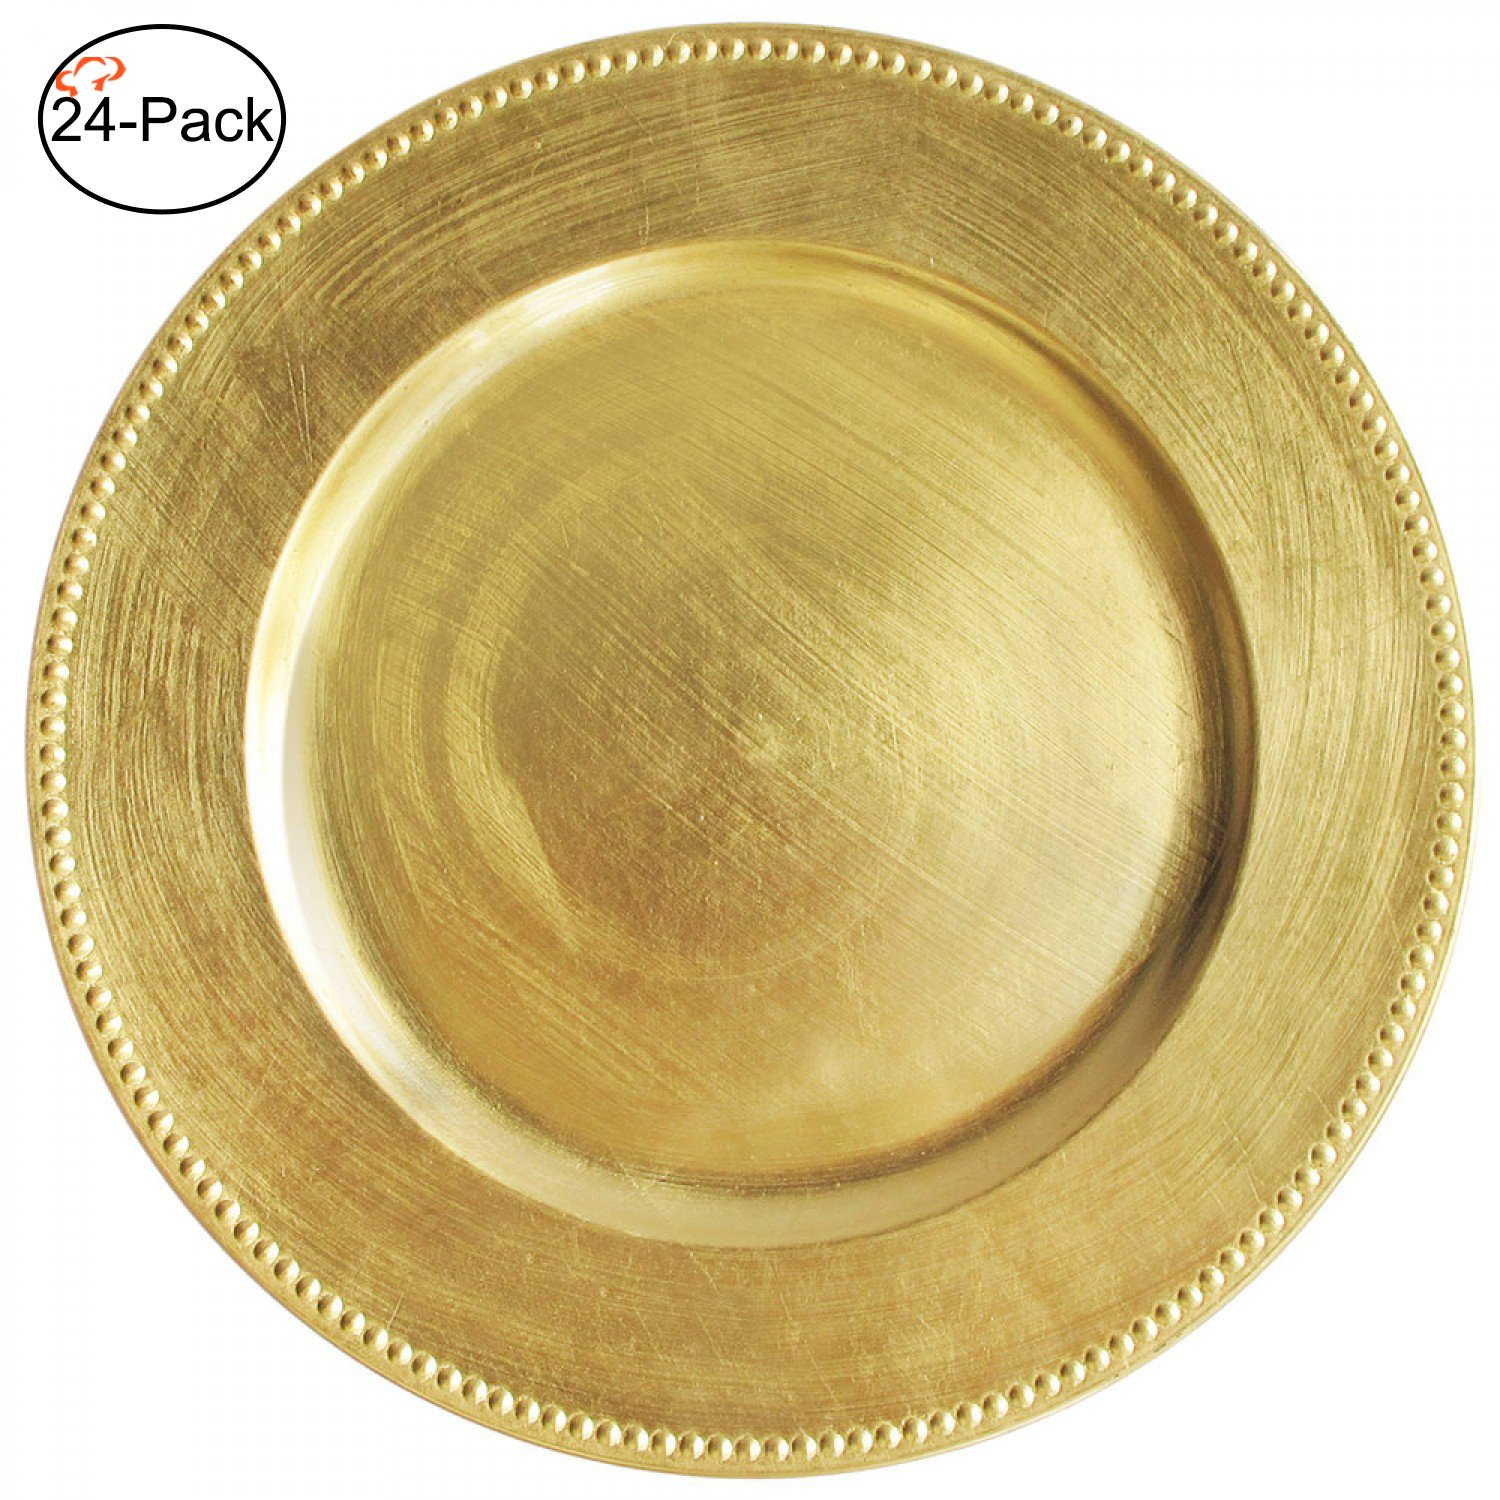 Tiger Chef 13-inch Gold Round Beaded Charger Plates, Set of 2,4,6, 12 or 24 Dinner Chargers (24-Pack)